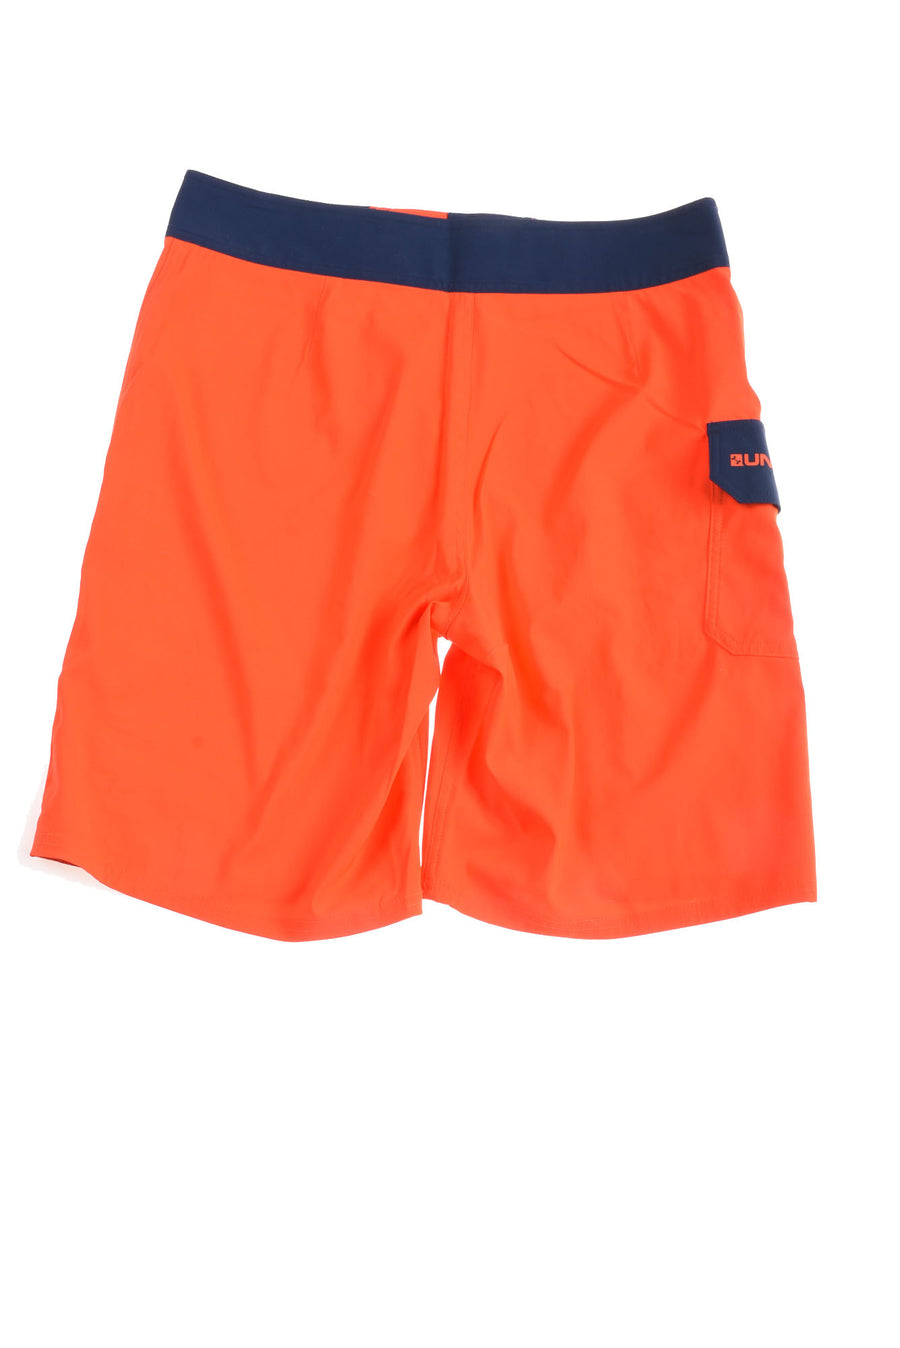 USED Under Armour Men's Swim Shorts 31 Orange & Blue